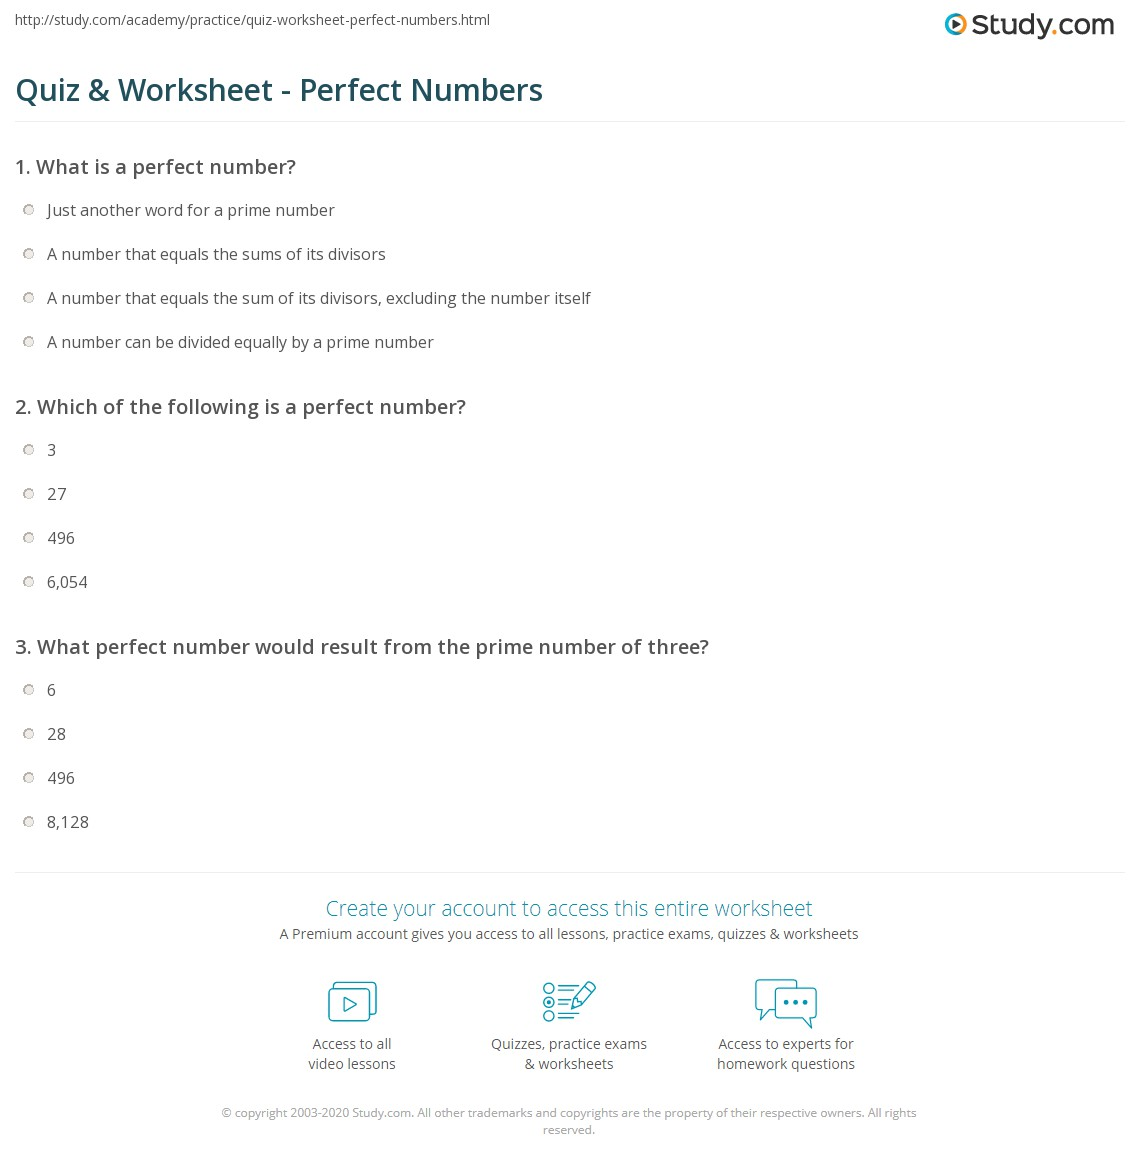 Quiz & Worksheet - Perfect Numbers | Study.com